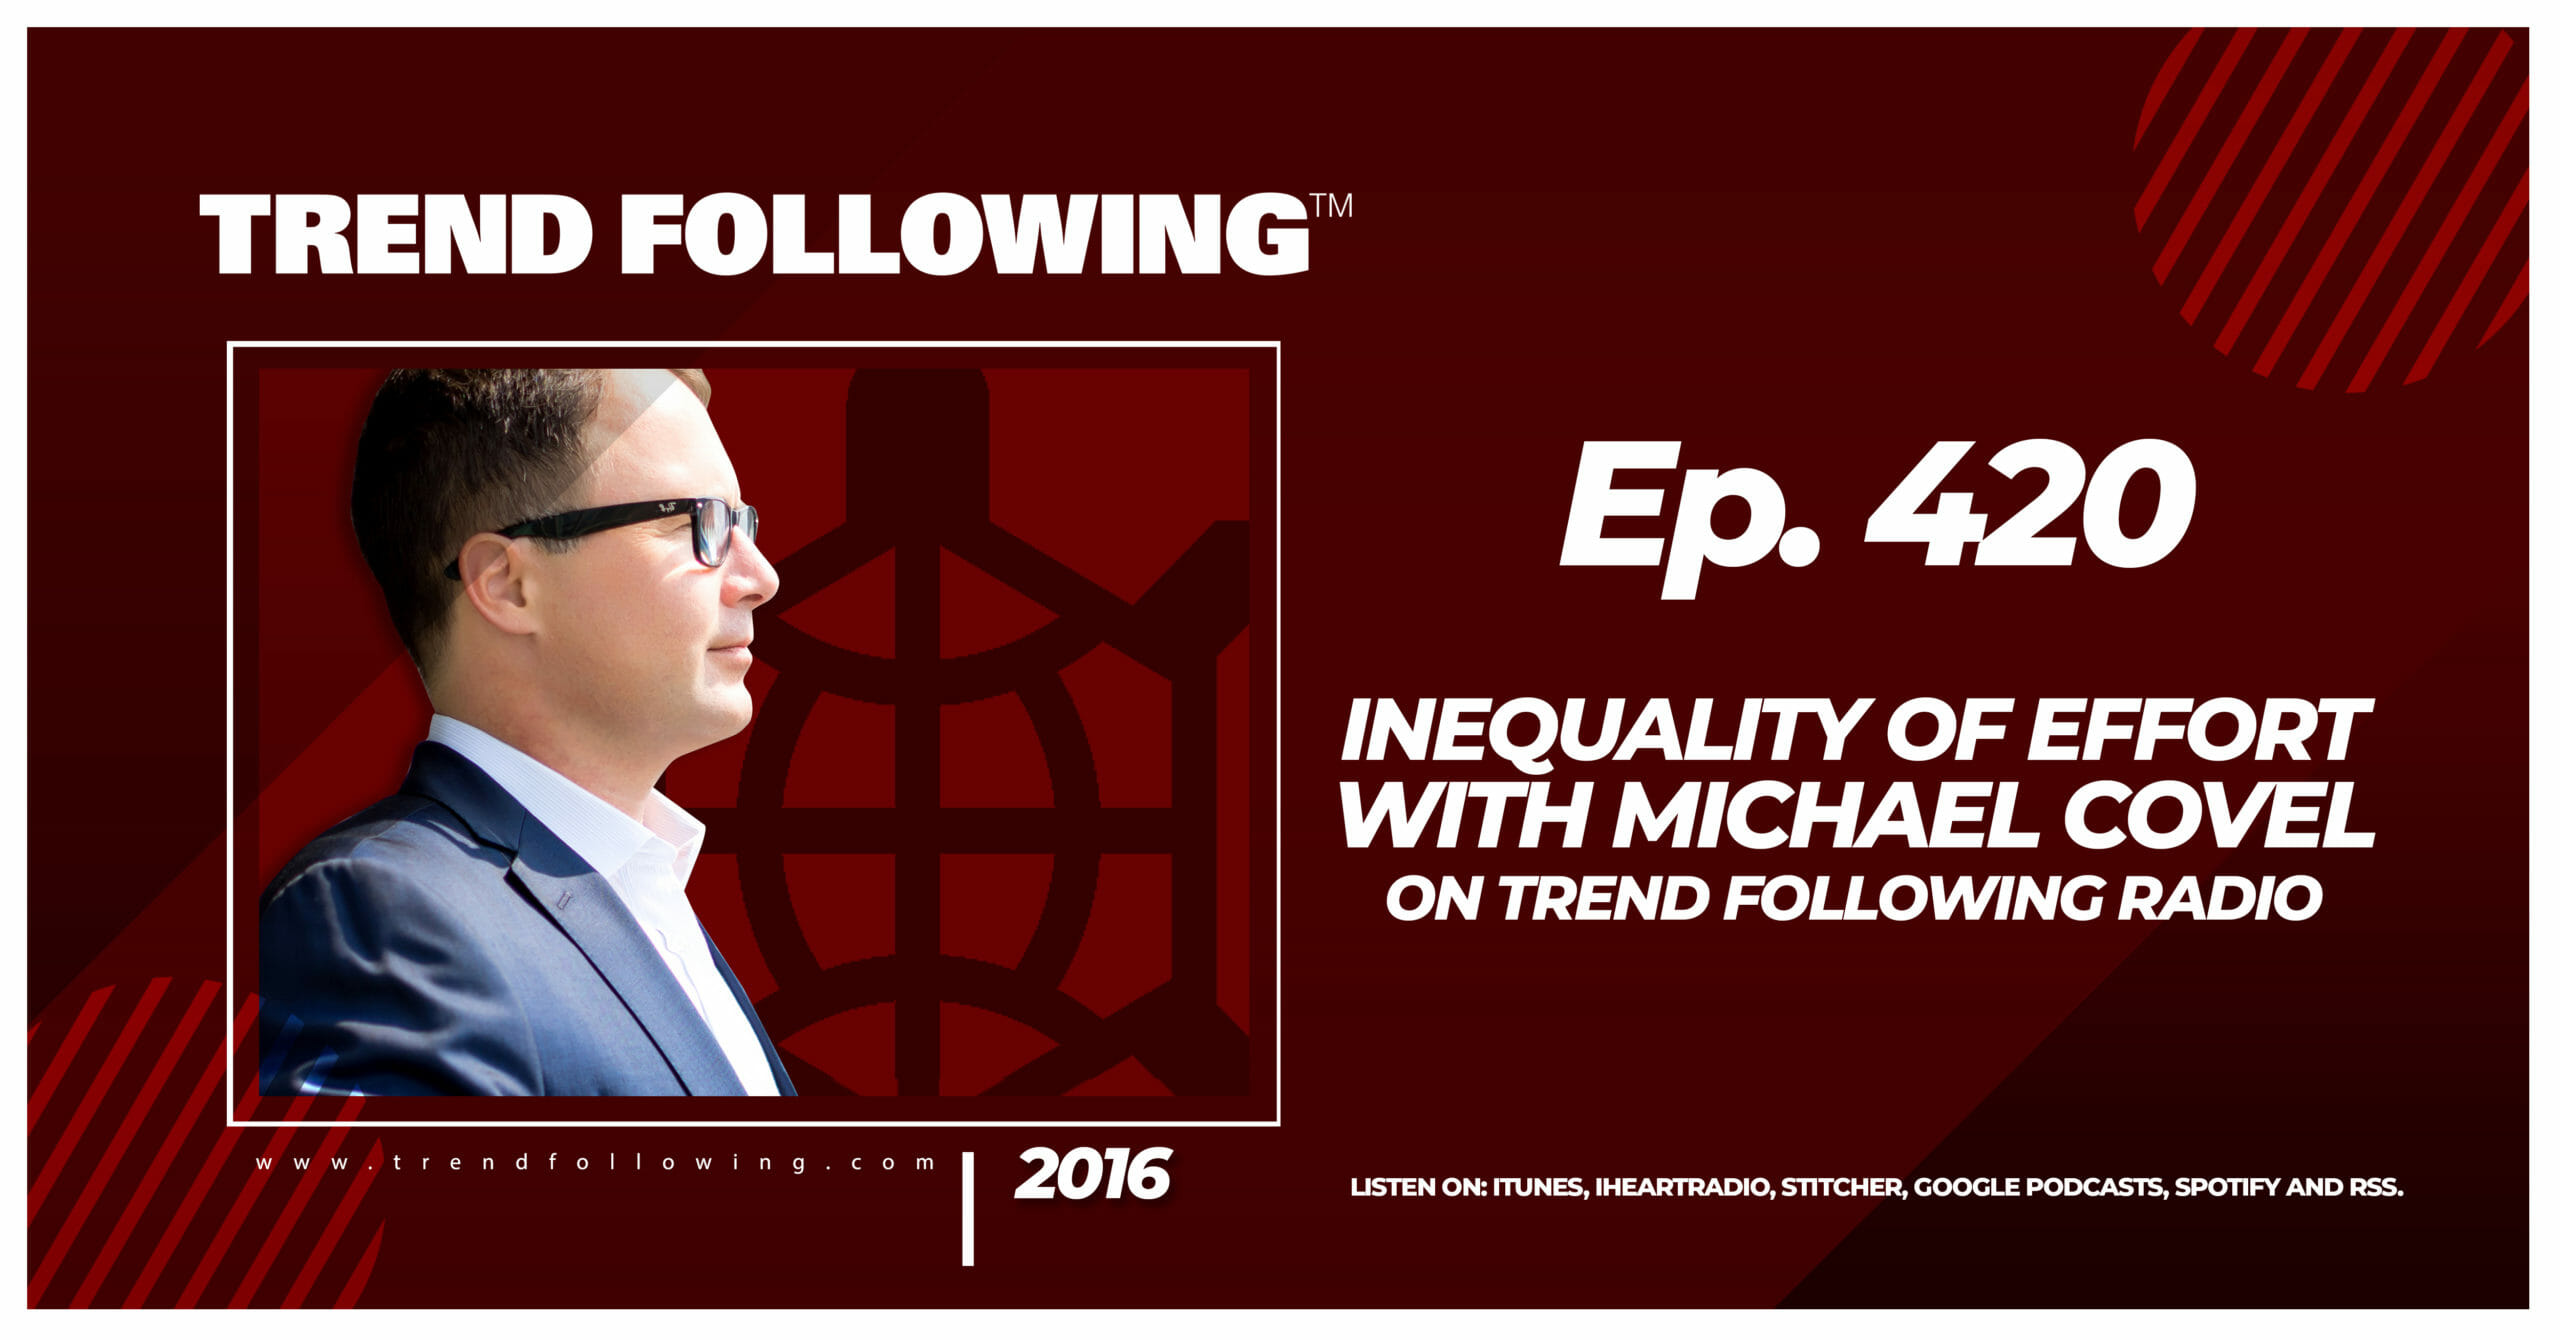 Inequality of Effort with Michael Covel on Trend Following Radio